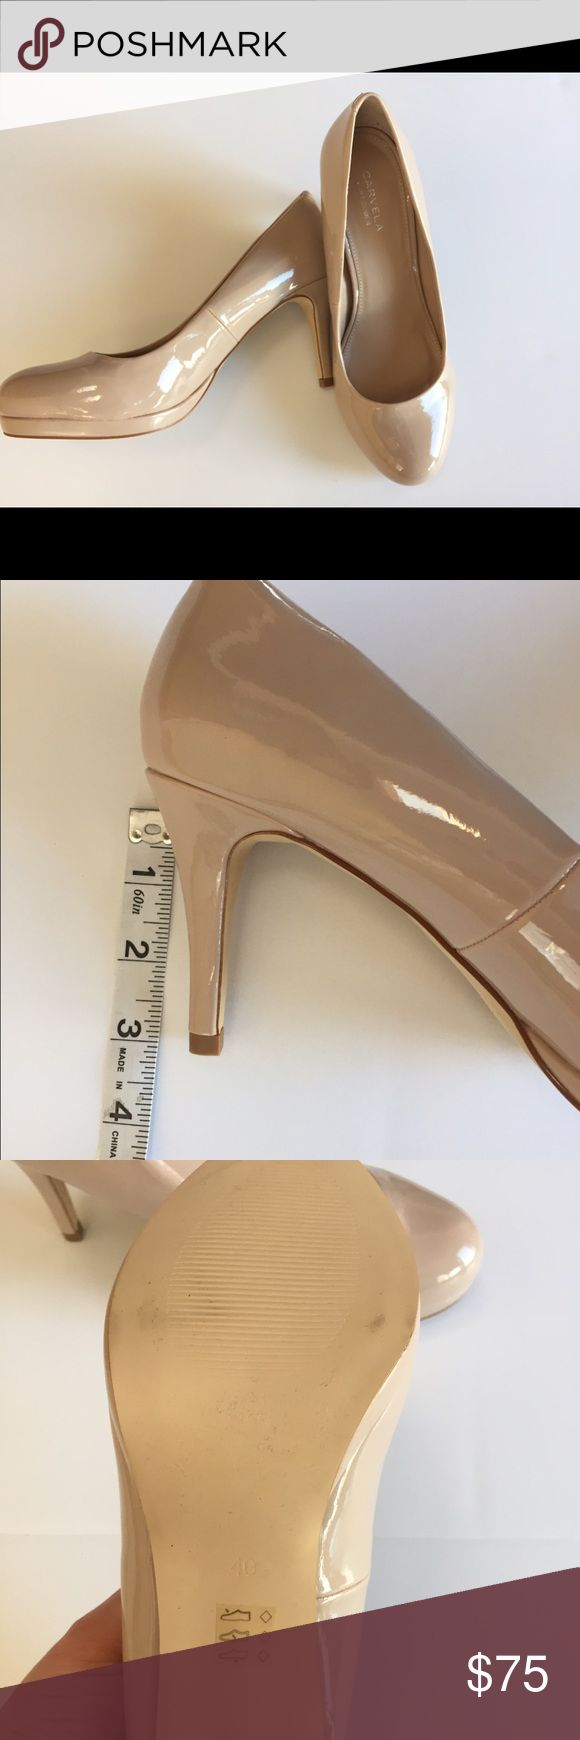 Carvela by Kurt Geiger Nude Pumps Size 40 US 9 NEW Brand new, slight markings on bottom from being tried on in the store. No box or dustbag. Perfect nude heel! Kurt Geiger Shoes Heels